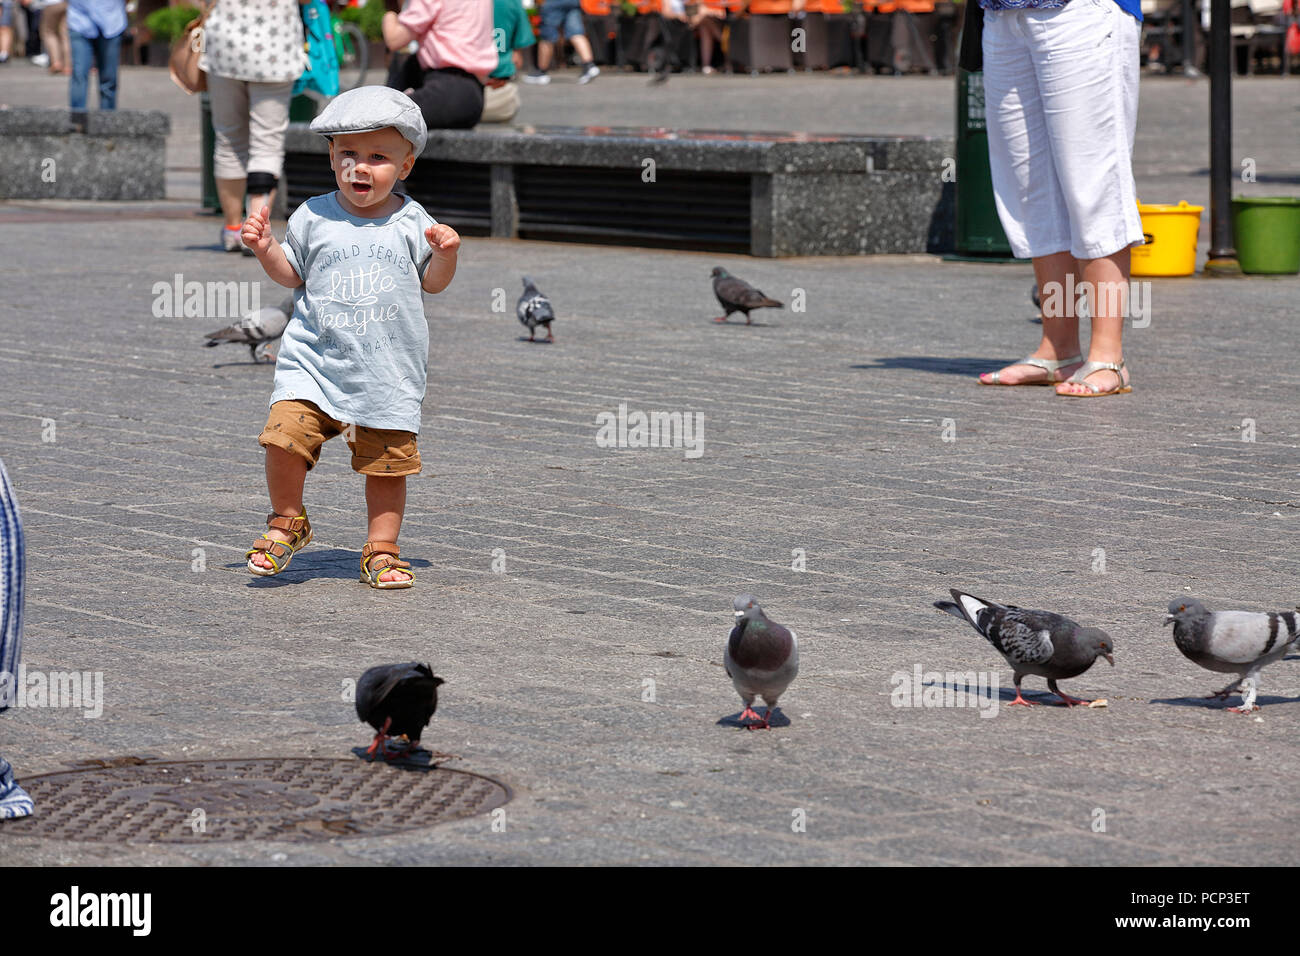 kid standing infront of pigeons in old town krakow, lesser poland, poland, europe - Stock Image